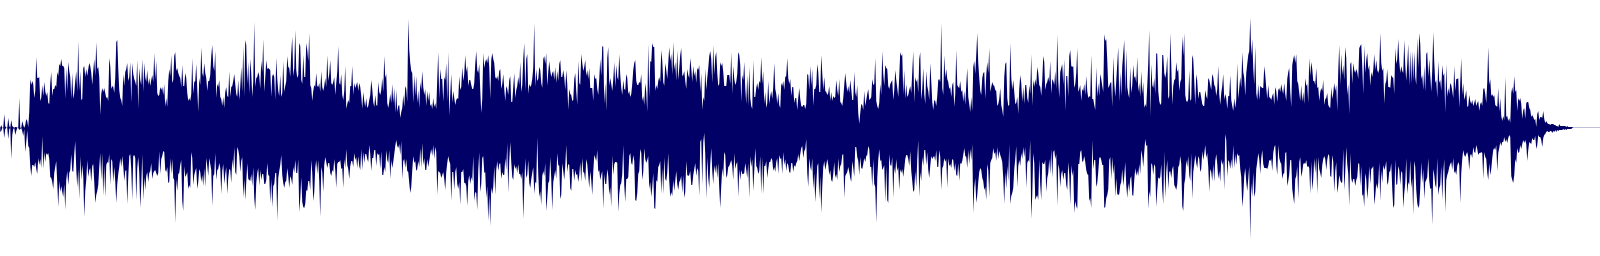 waveform of track #153779